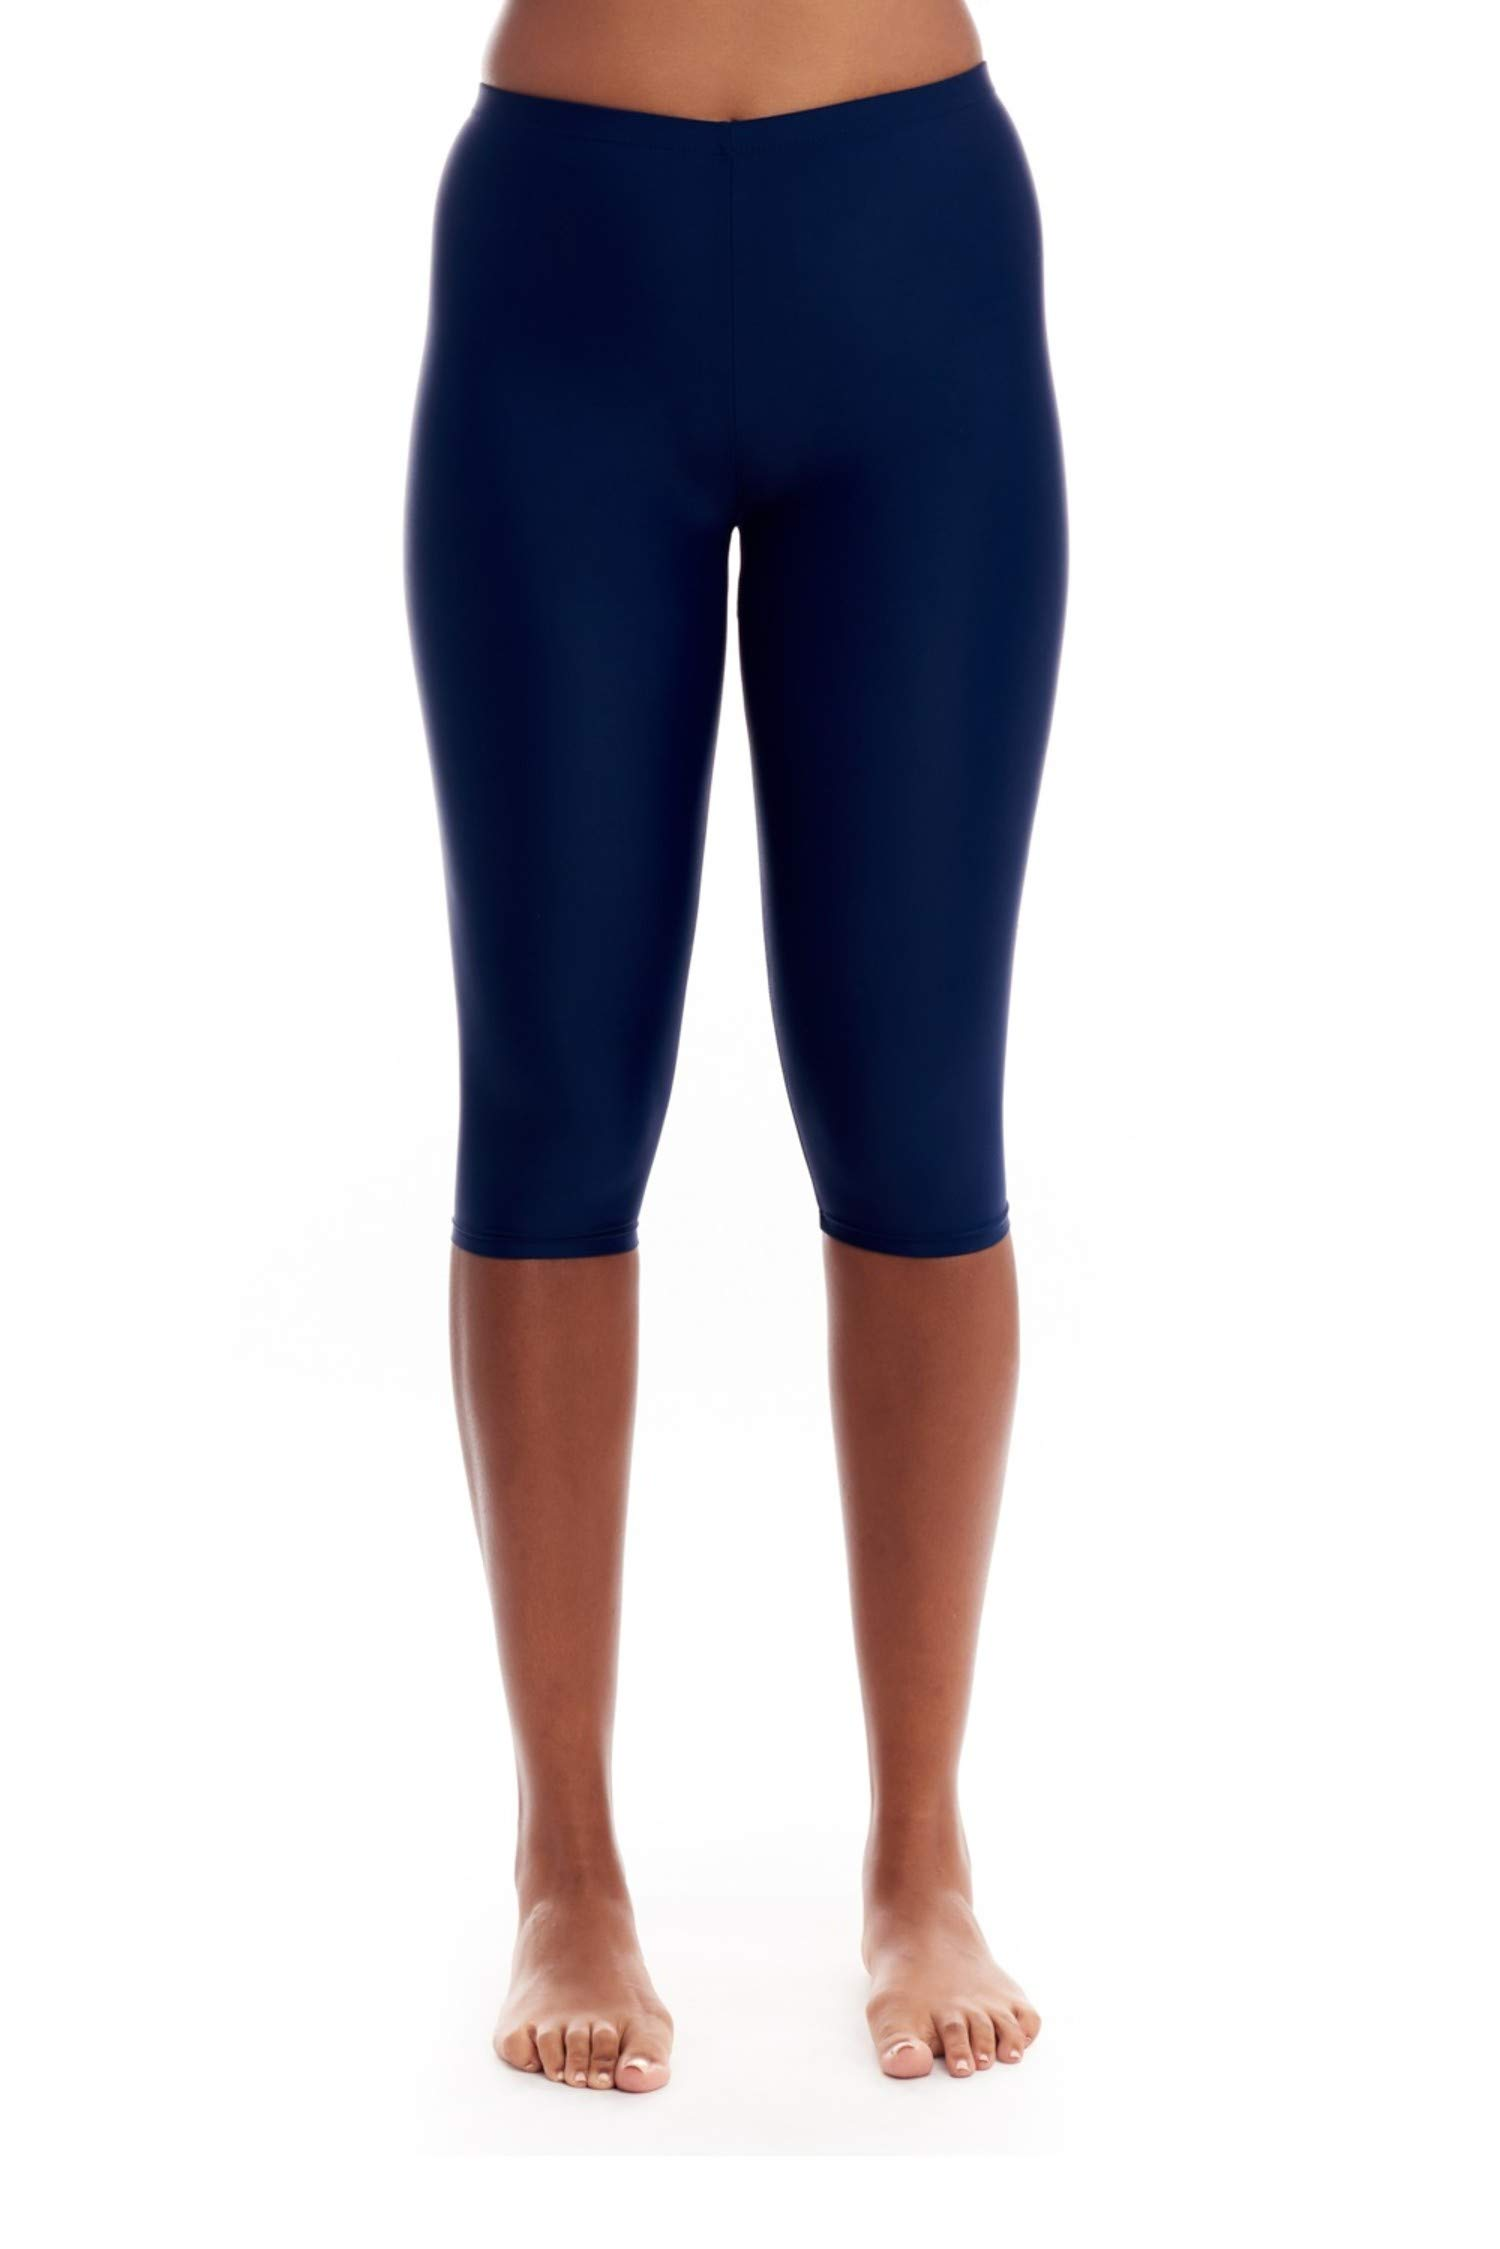 COVER GIRL Womens Swimwear Straight and Curvy High Waisted Swim Capri Leggings with Tummy Control and Chlorine Resistant